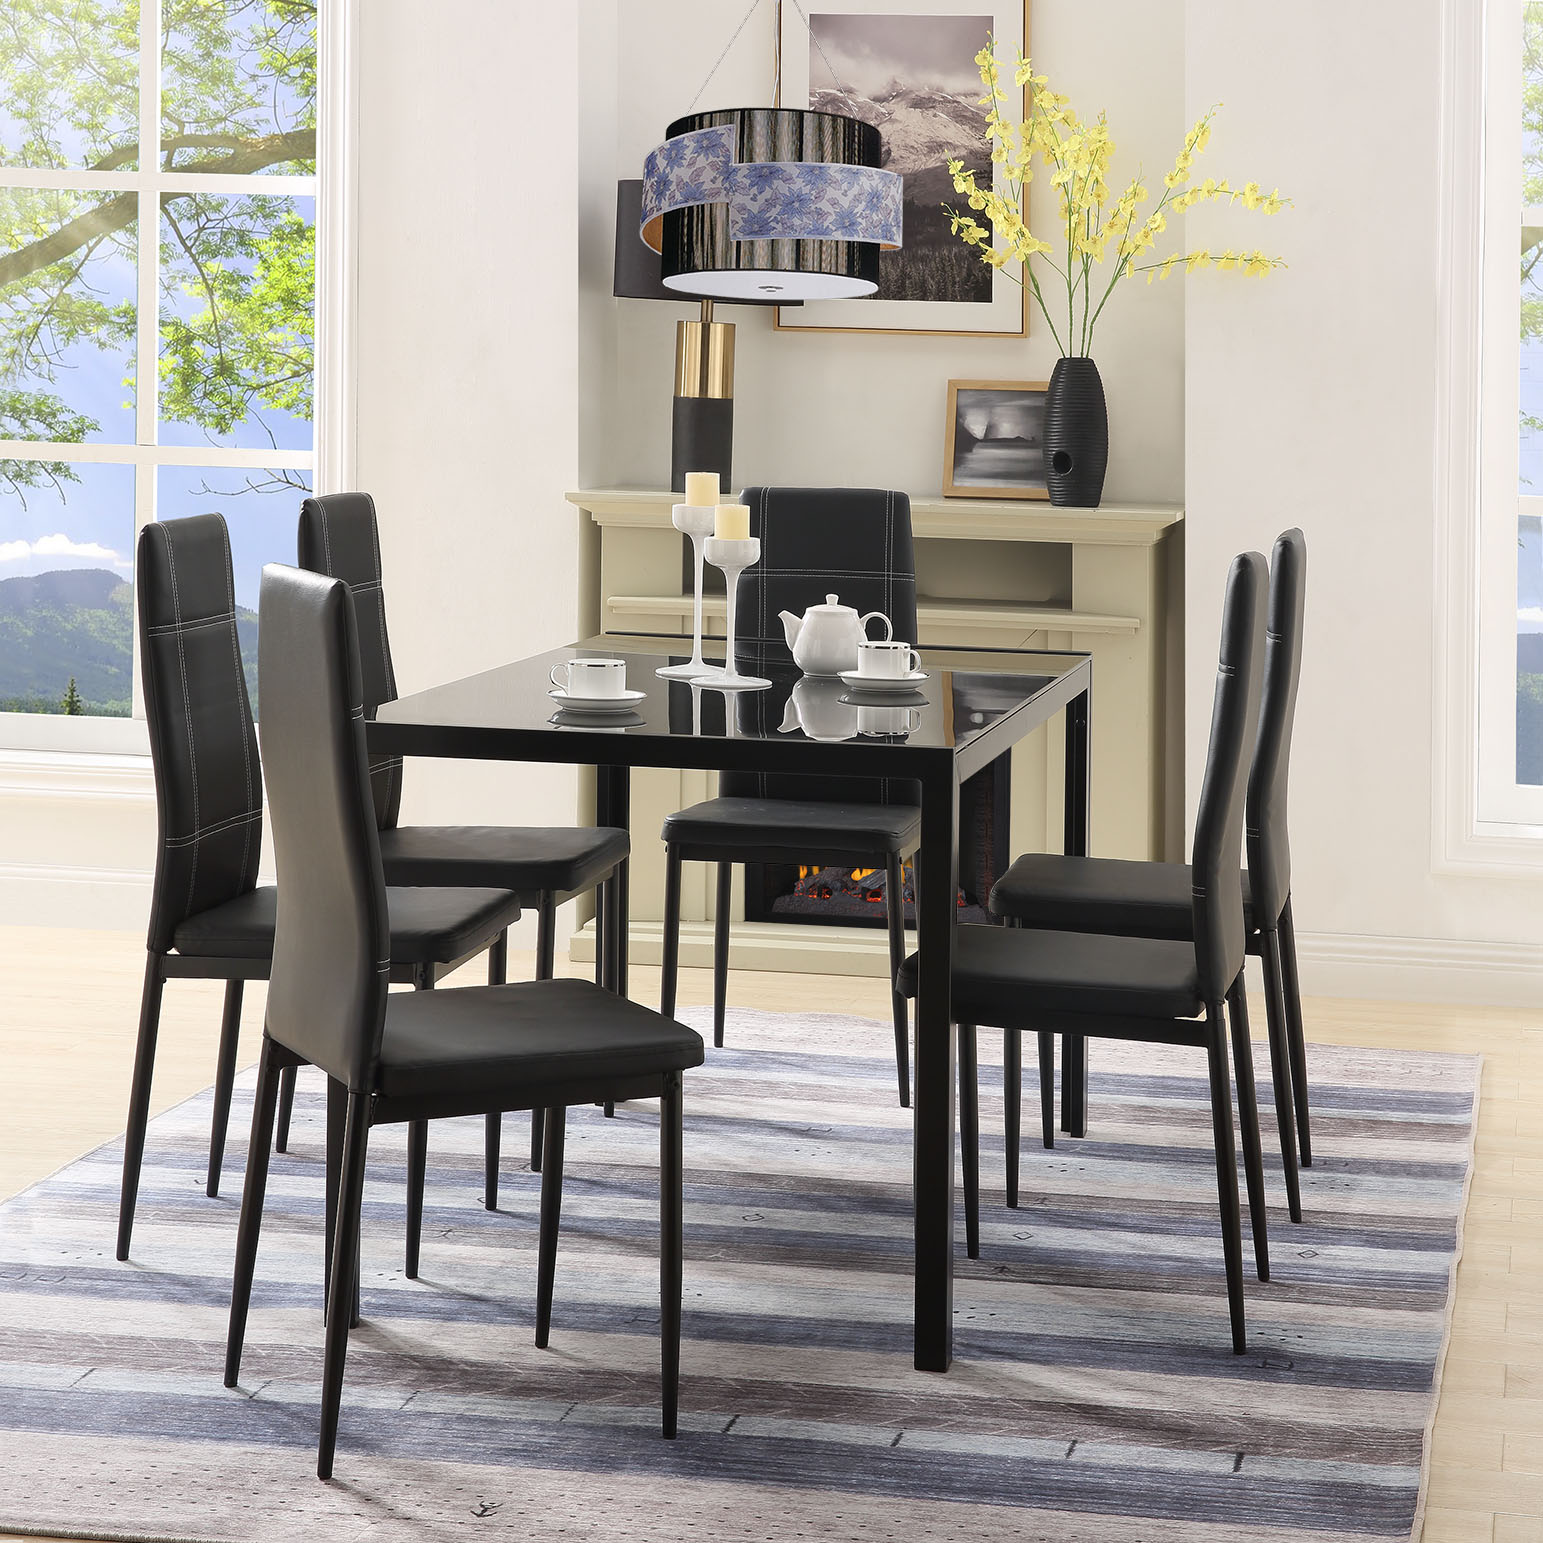 Dining Table Set For 7 Modern Kitchen Dining Table Set Kitchen Dining Table Set Glass Top Table With 6 Leather Chairs Breakfast Furniture Dining Room Table Set For Small Spaces Kitchen R924